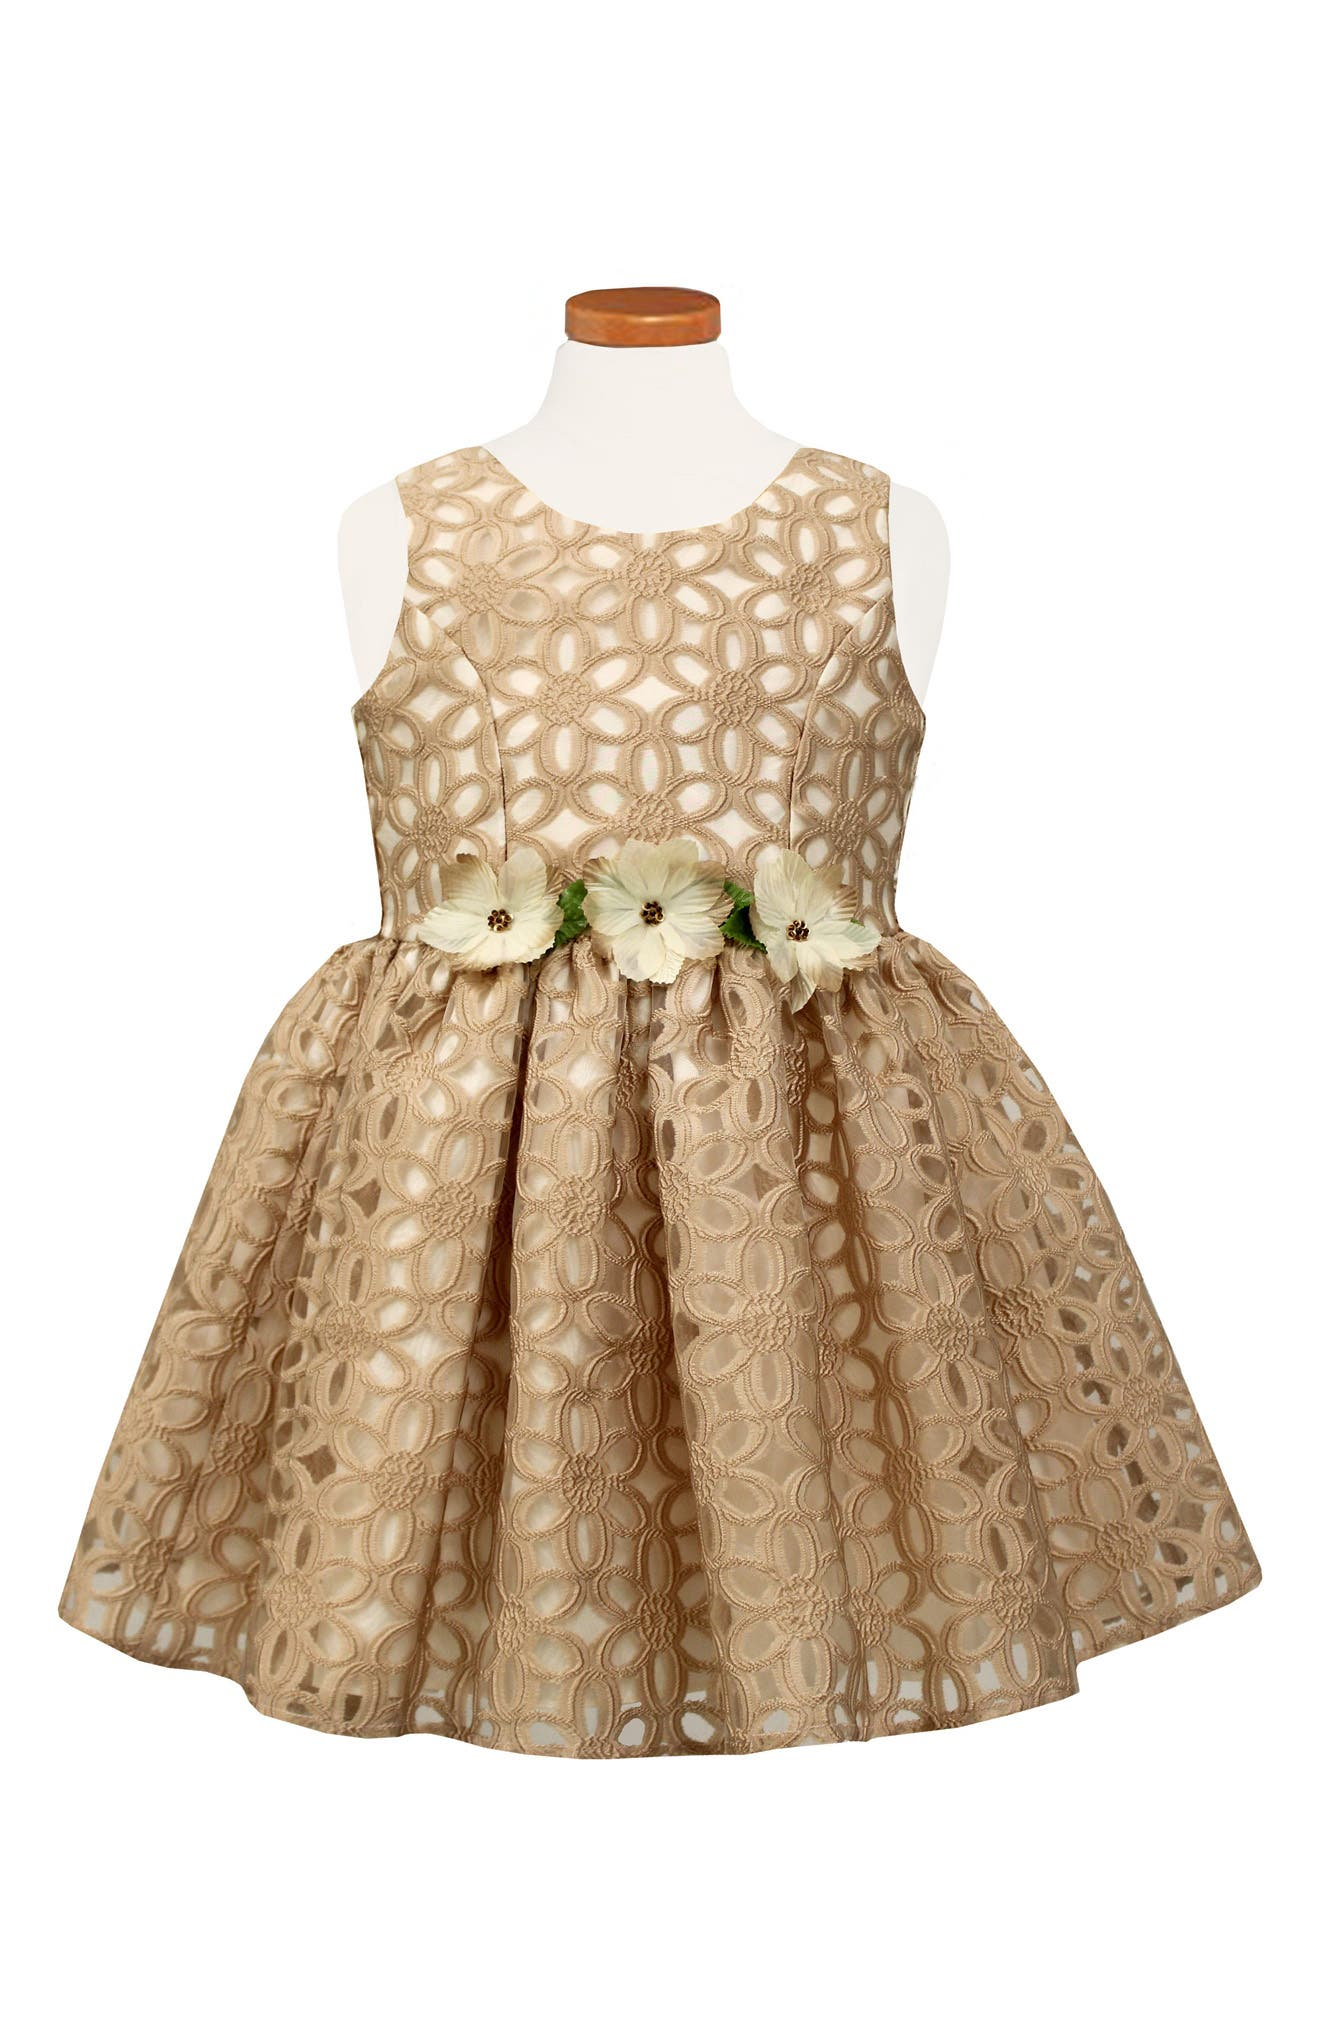 Alternate Image 1 Selected - Sorbet Floral Burnout Party Dress (Toddler Girls & Little Girls)